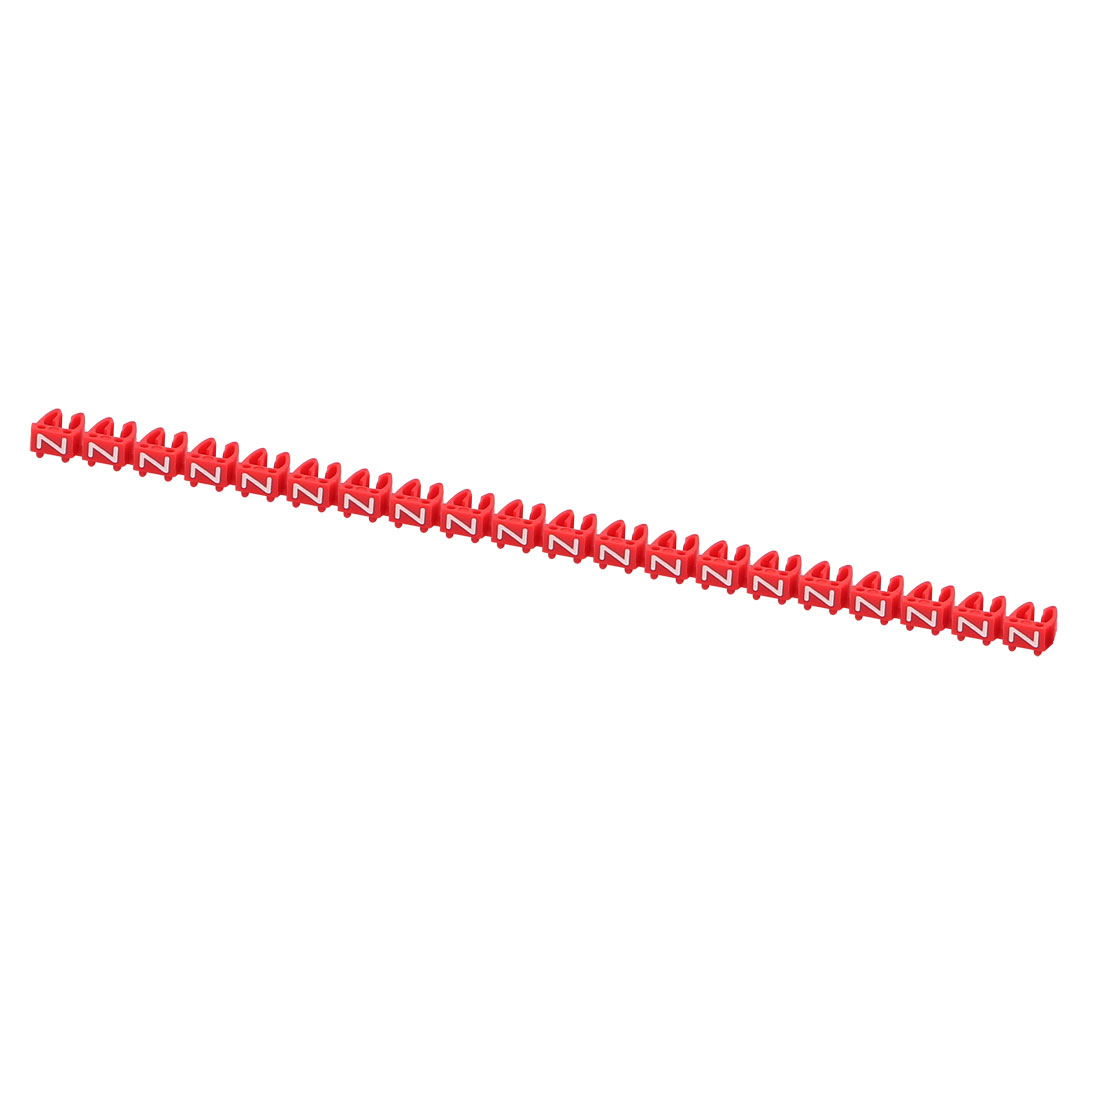 20 Pcs Letters Z Network Cable Labels Markers Red for 4.0-6.0mm Dia Cable